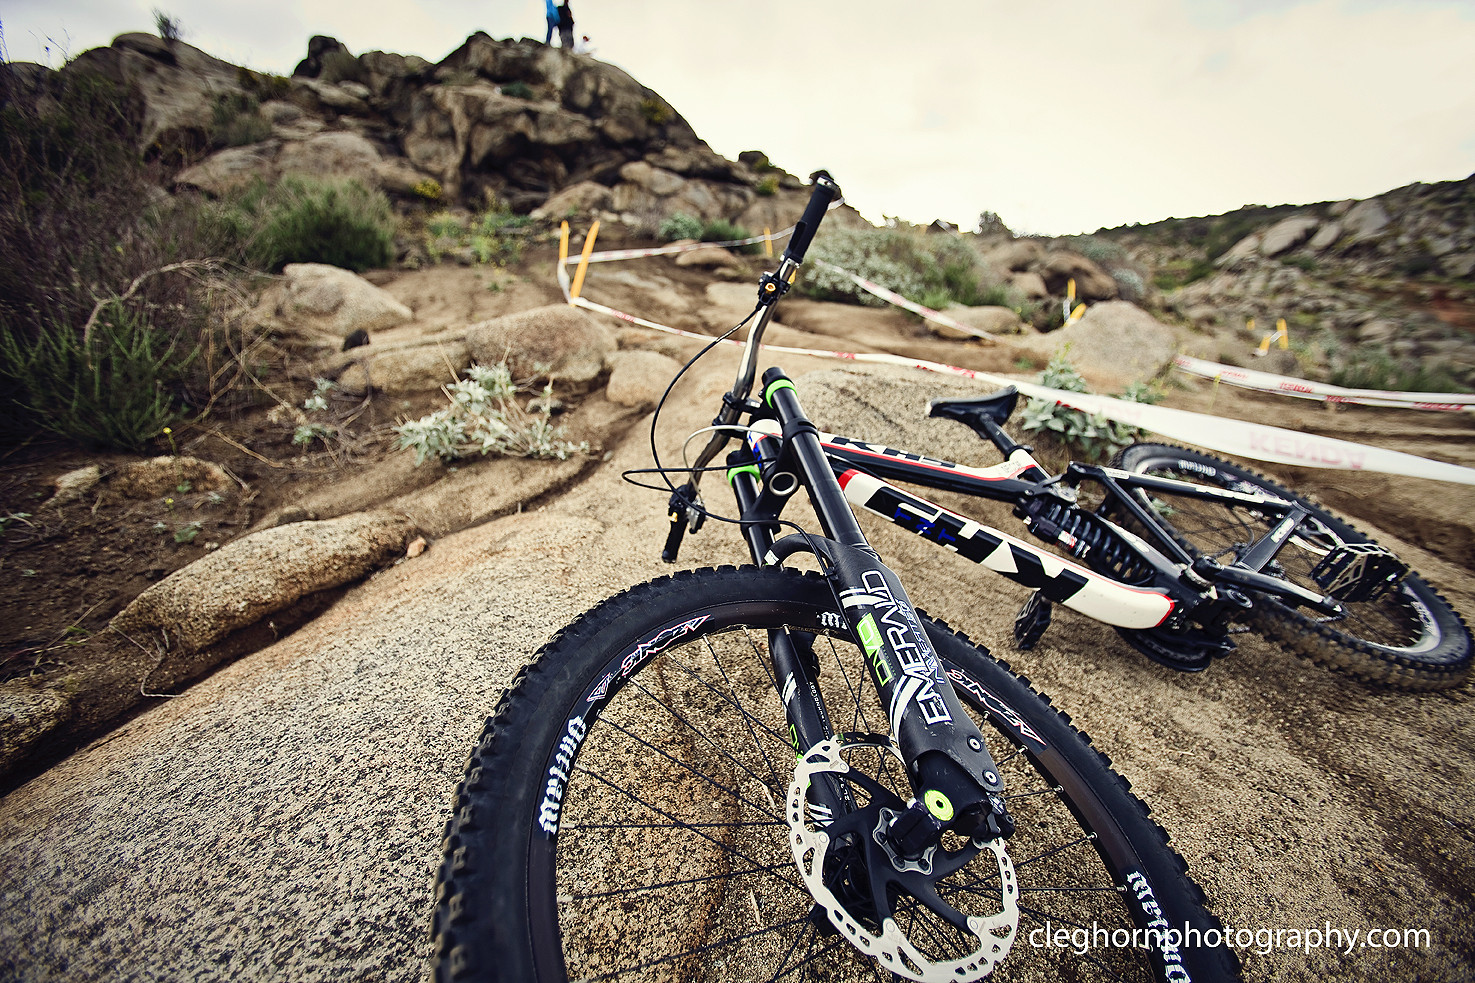 Just ride! - Cleghorn Photography - Mountain Biking Pictures - Vital MTB